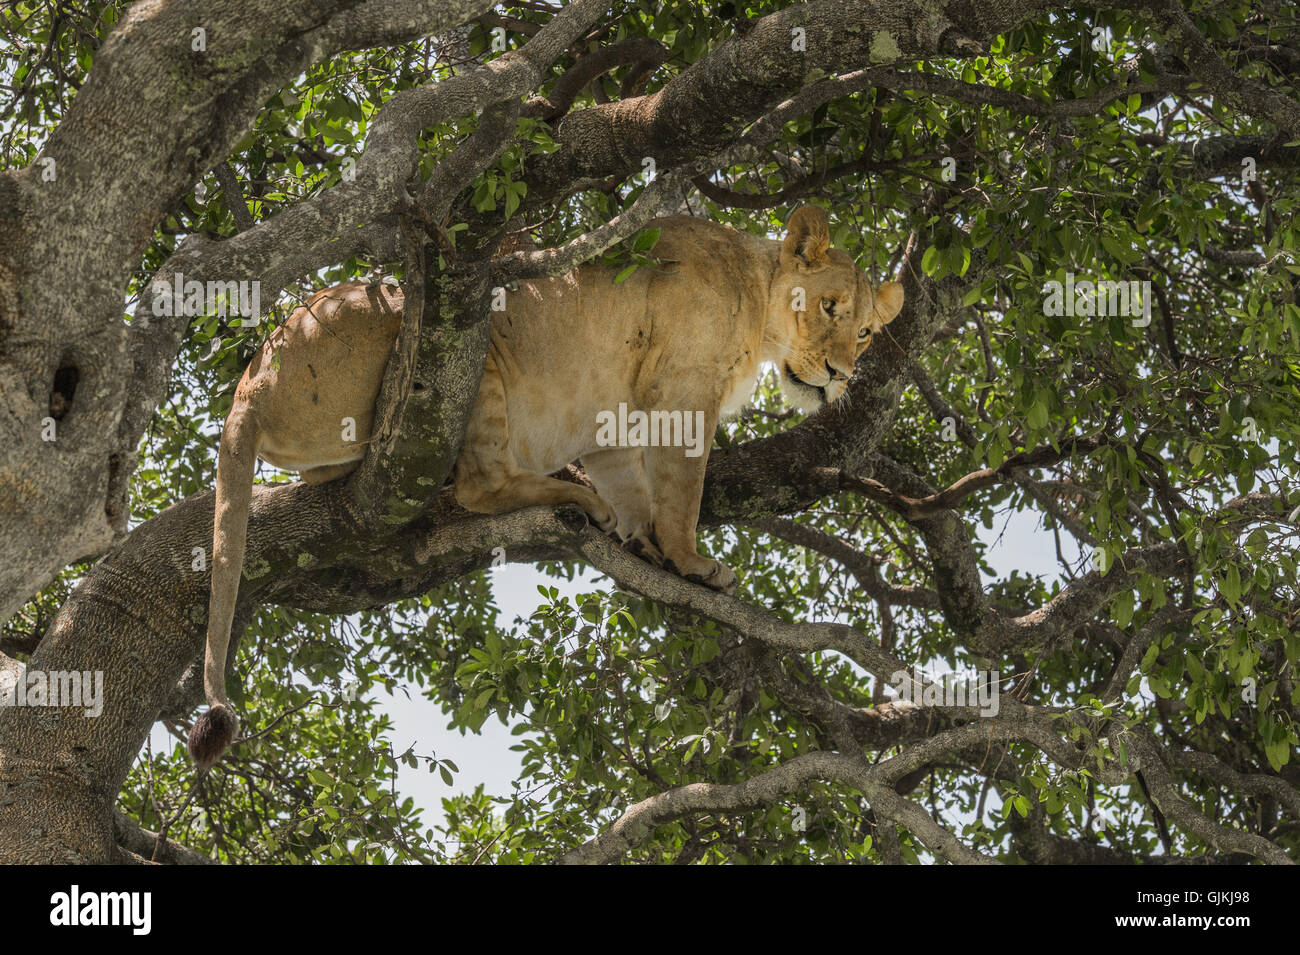 Lion in a tree - Stock Image